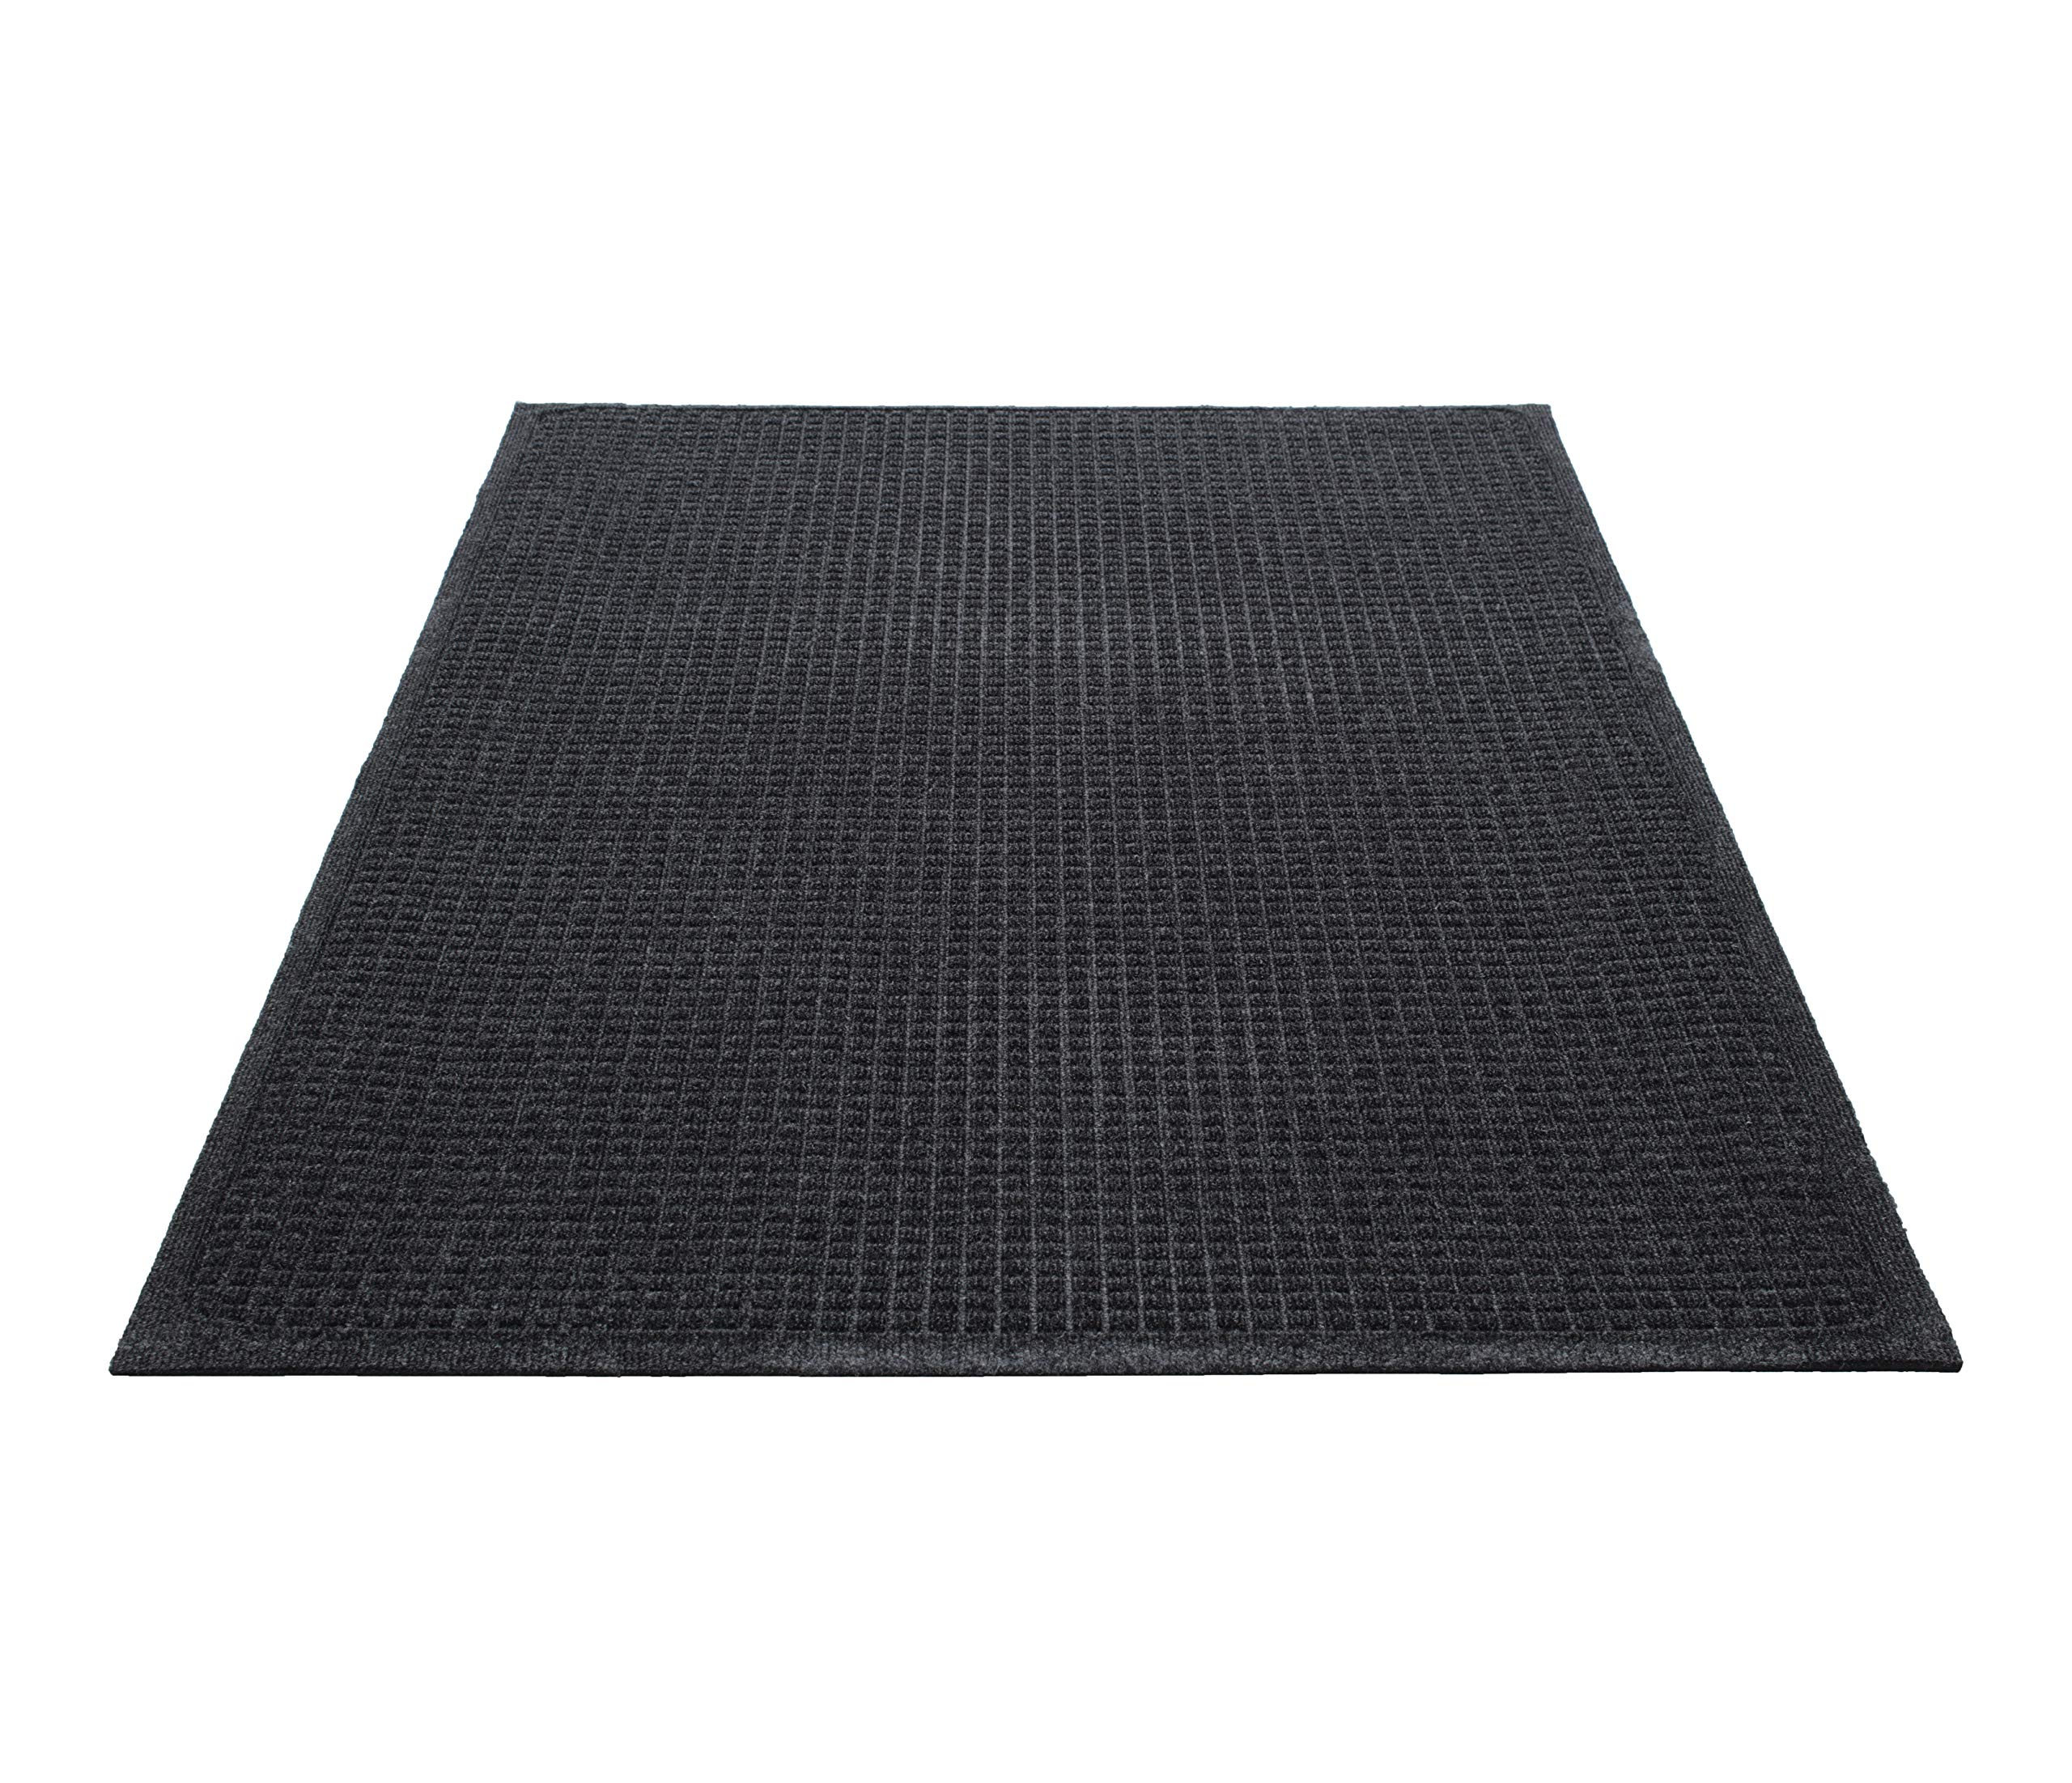 Guardian EcoGuard Indoor Wiper Floor Mat, Recycled Plastic and Rubber, 4' x 6', Charcoal by Guardian